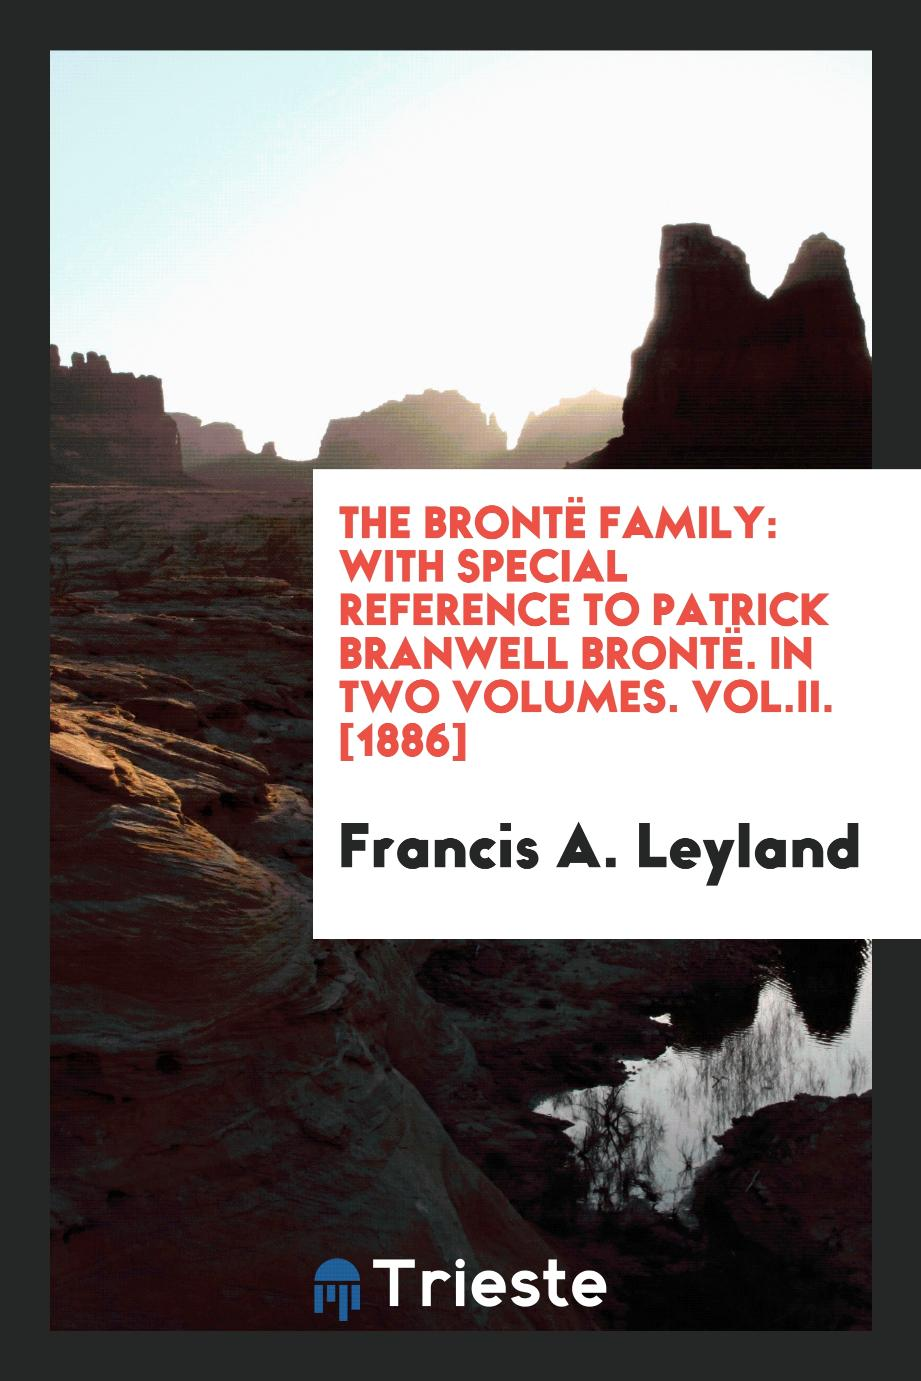 The Brontë Family: With Special Reference to Patrick Branwell Brontë. In Two Volumes. Vol.II. [1886]